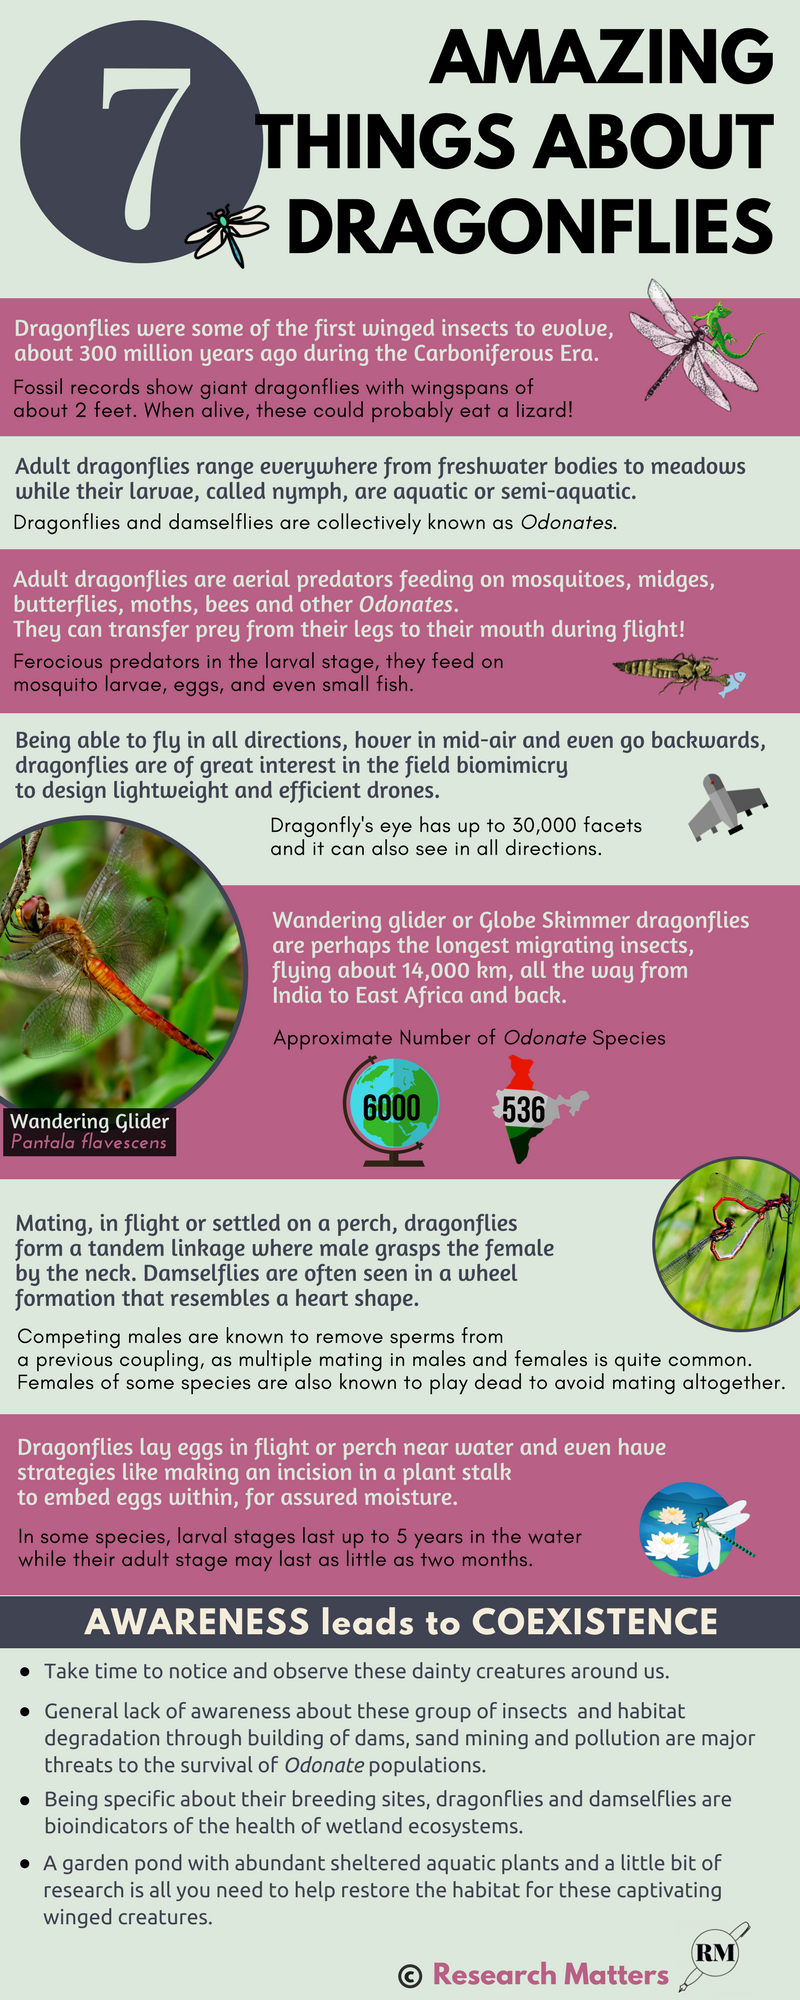 7 Amazing Things about Dragonflies